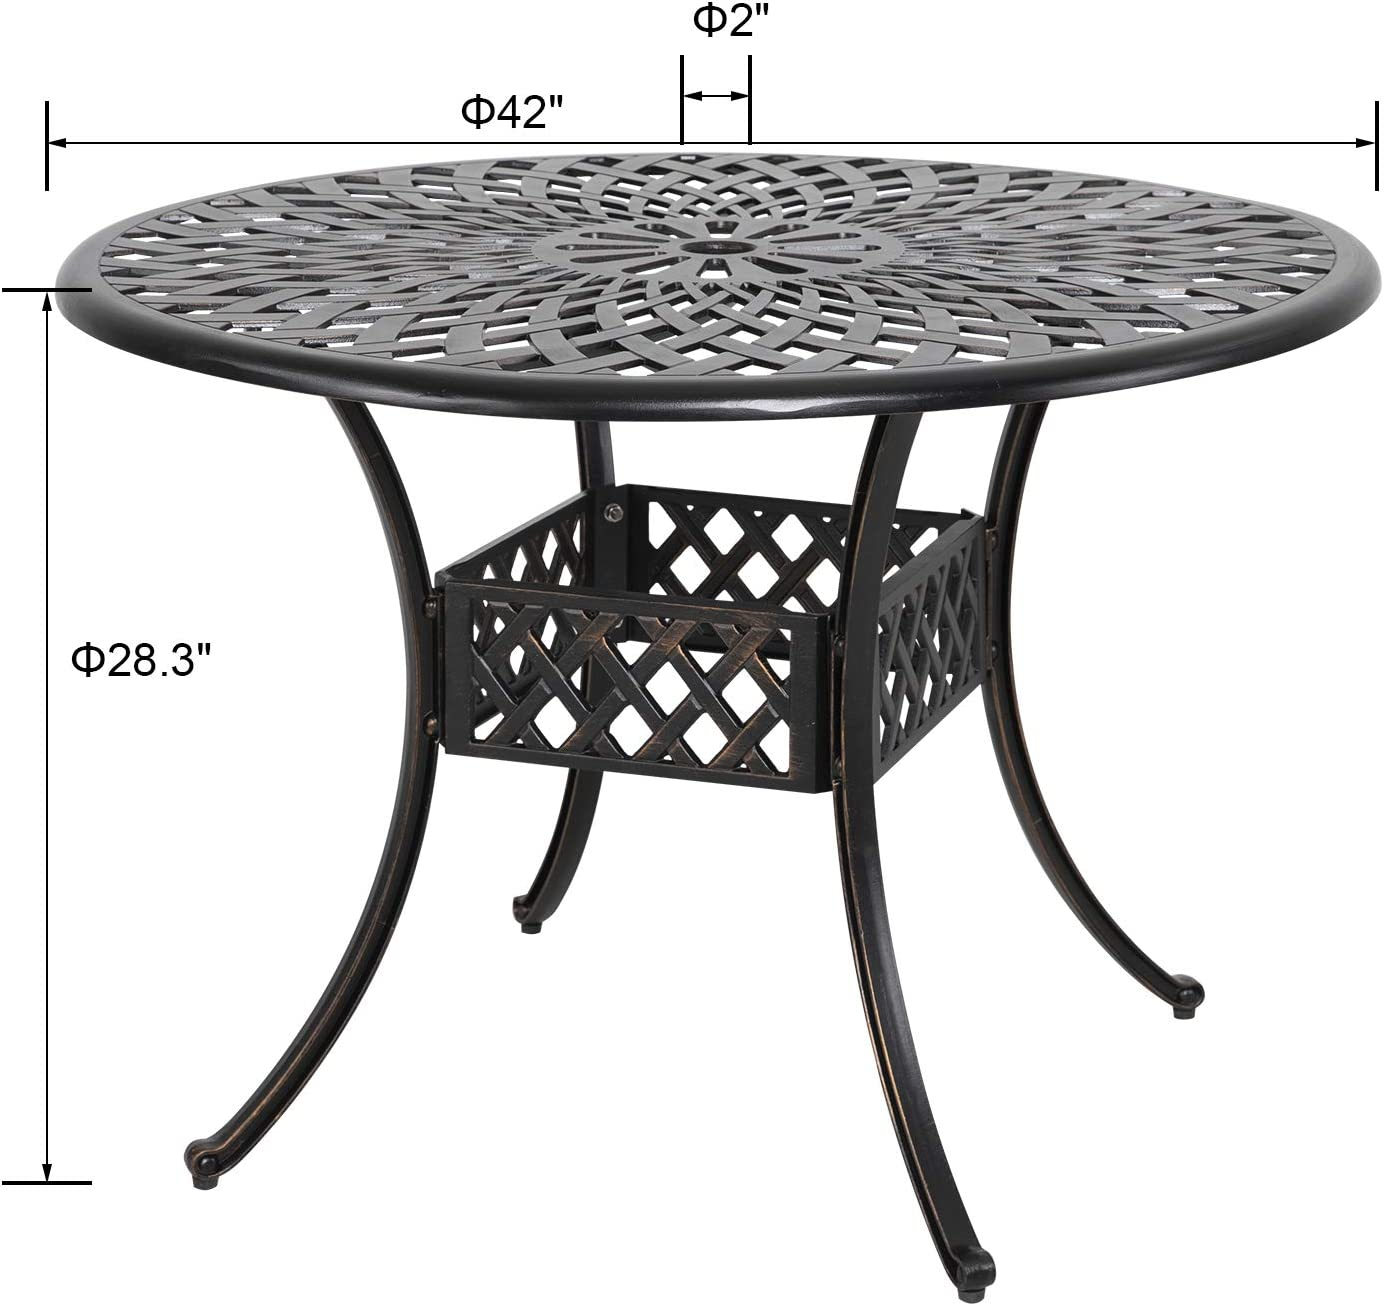 Amazon Com Nuu Garden 42 Inch Outdoor Round Patio Bistro Table Cast Aluminum Outdoor Dining Table With Umbrella Hole Antique Bronze Kitchen Dining